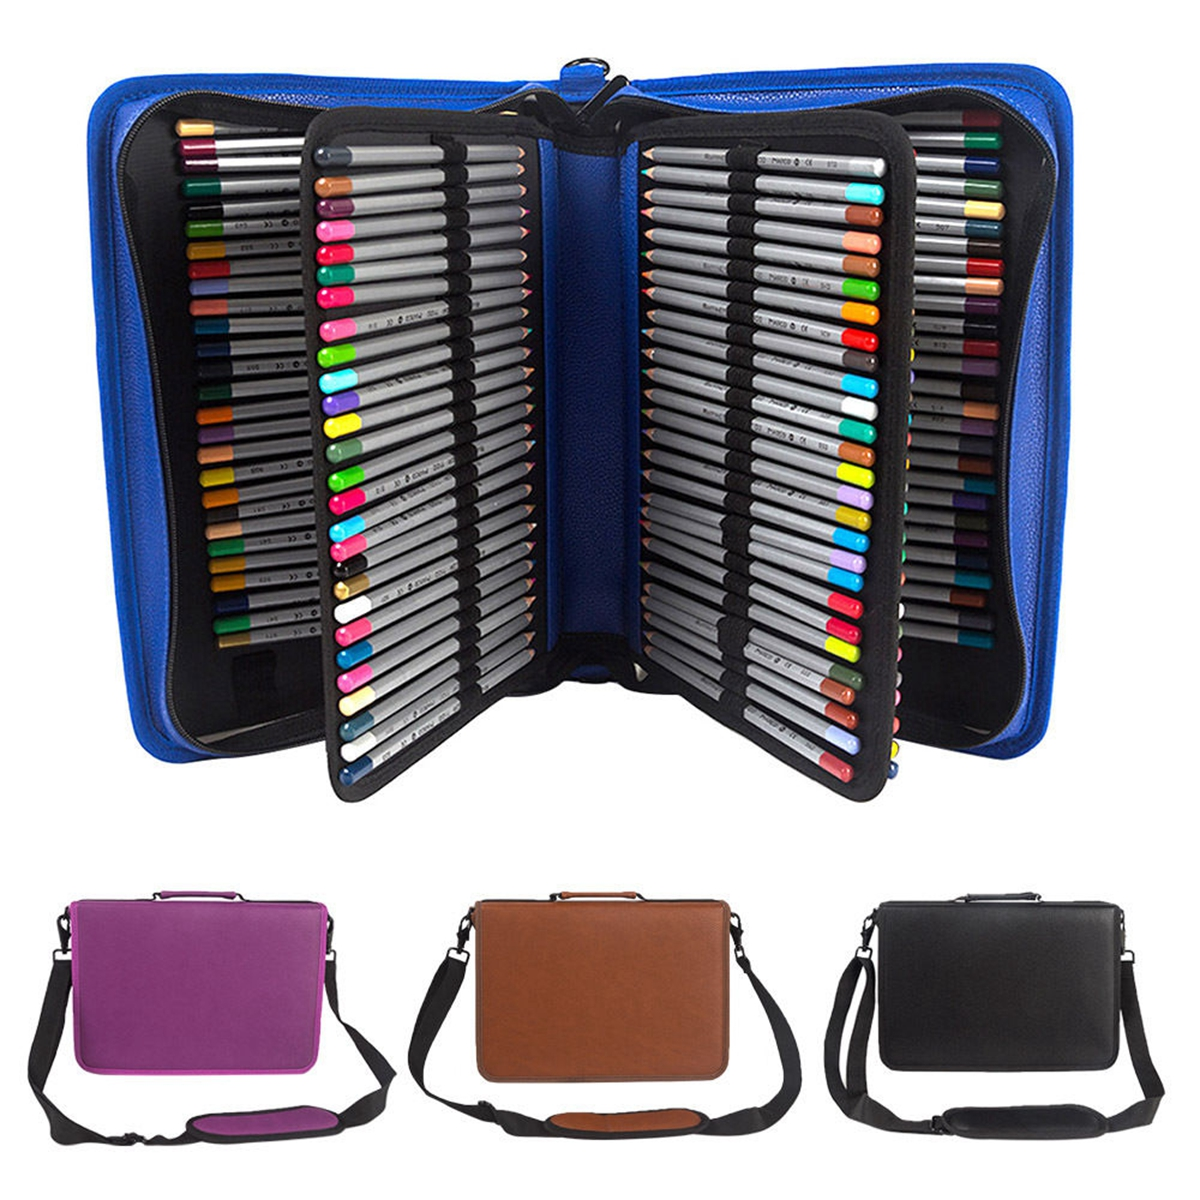 160 Slots Pencil Pen Case Holder Pouch PU Leather Eraser Art Supply Shoulder Bag,Blue color